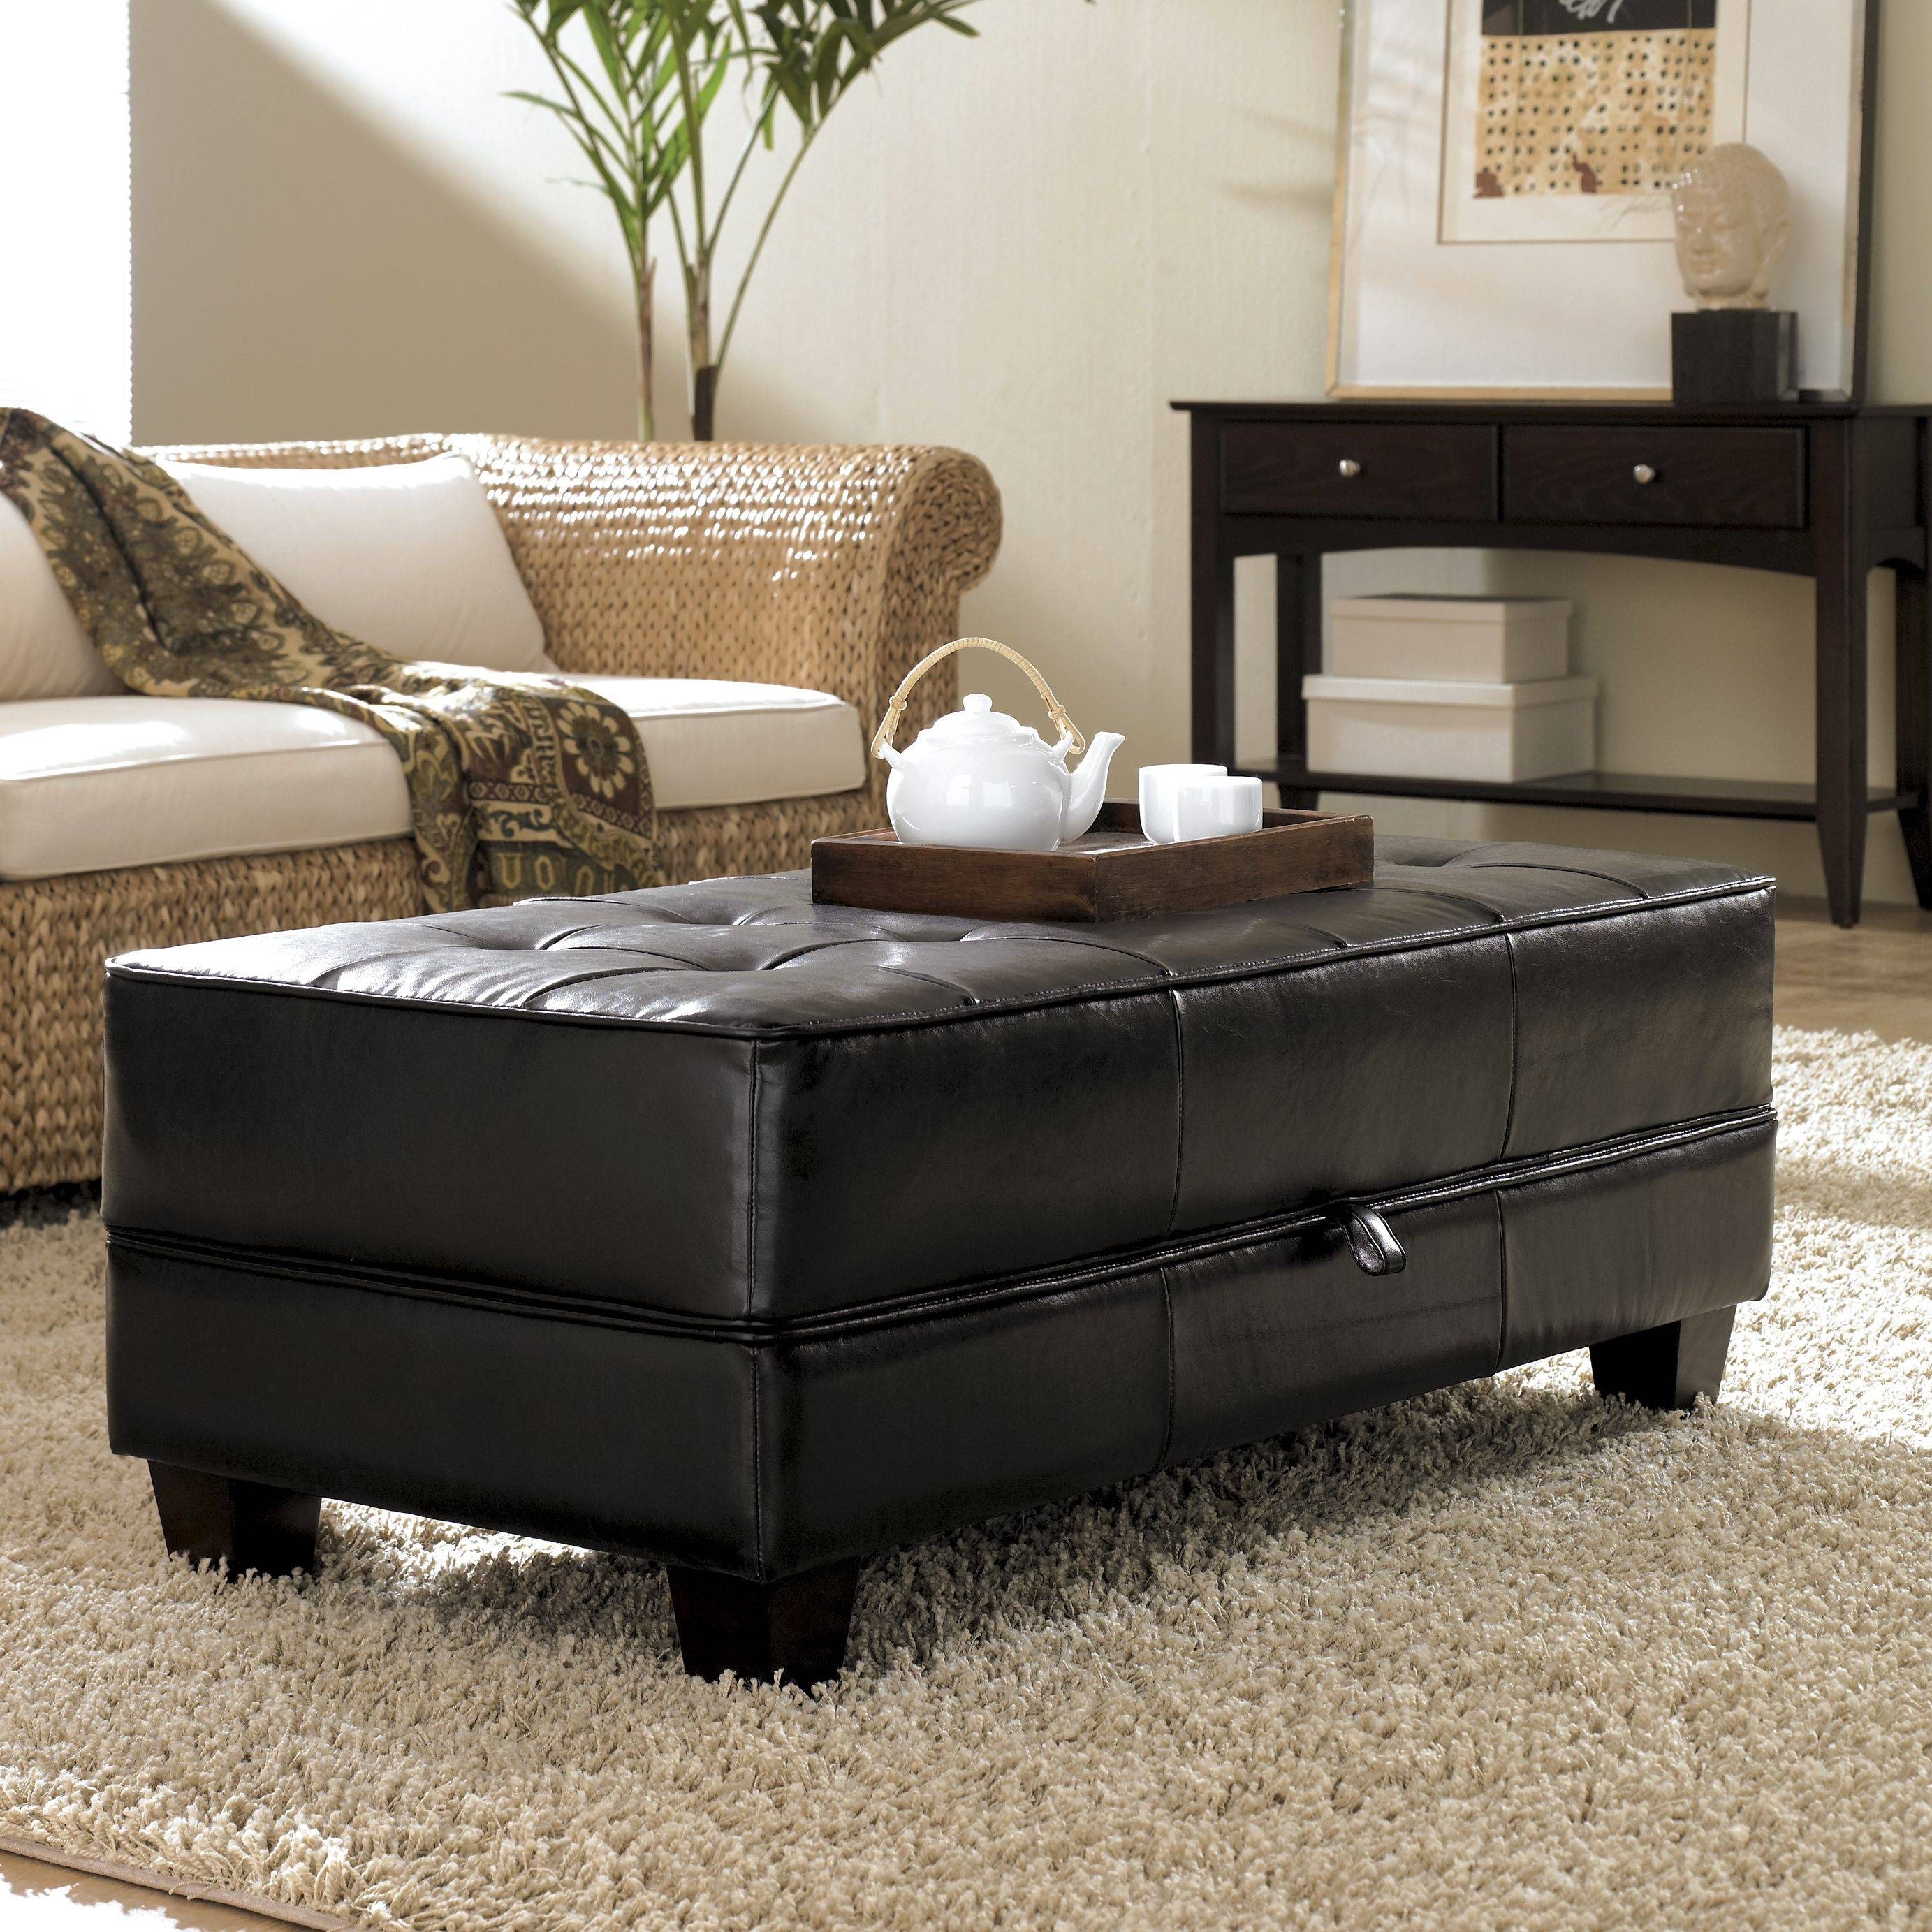 4 Tray Top Black Leather Storage Ottoman Coffee Table | Coffee Within Brown Leather Ottoman Coffee Tables (View 20 of 30)